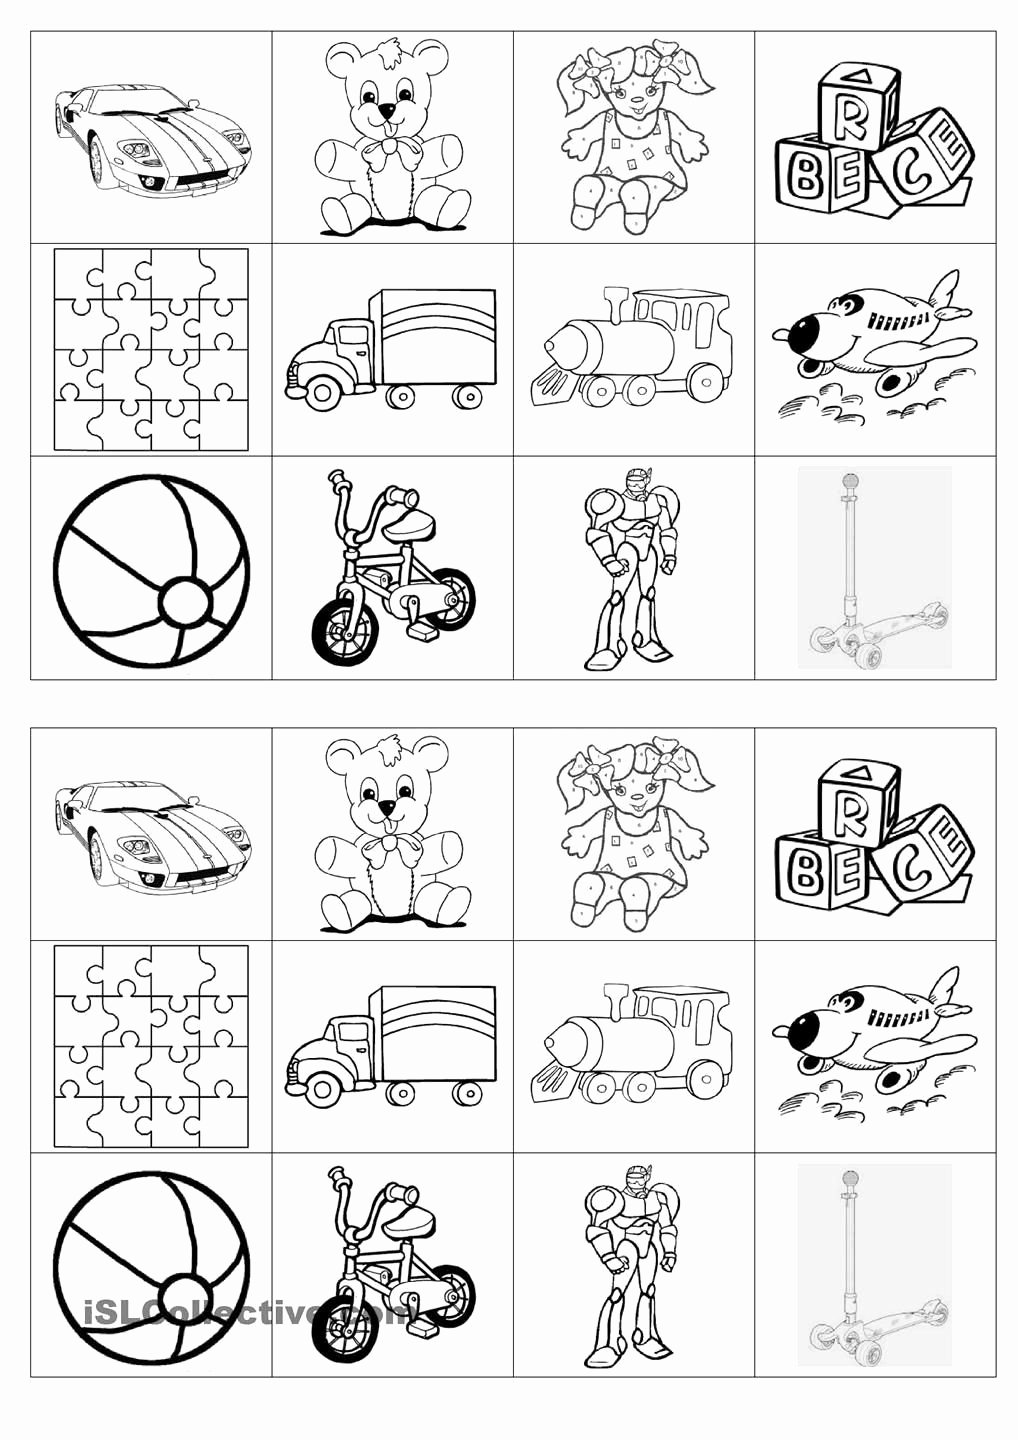 Memory Exercises for Adults Printable Lovely Esl toys Coloring Worksheet Unique Aleksandra Cho…'ojczyk